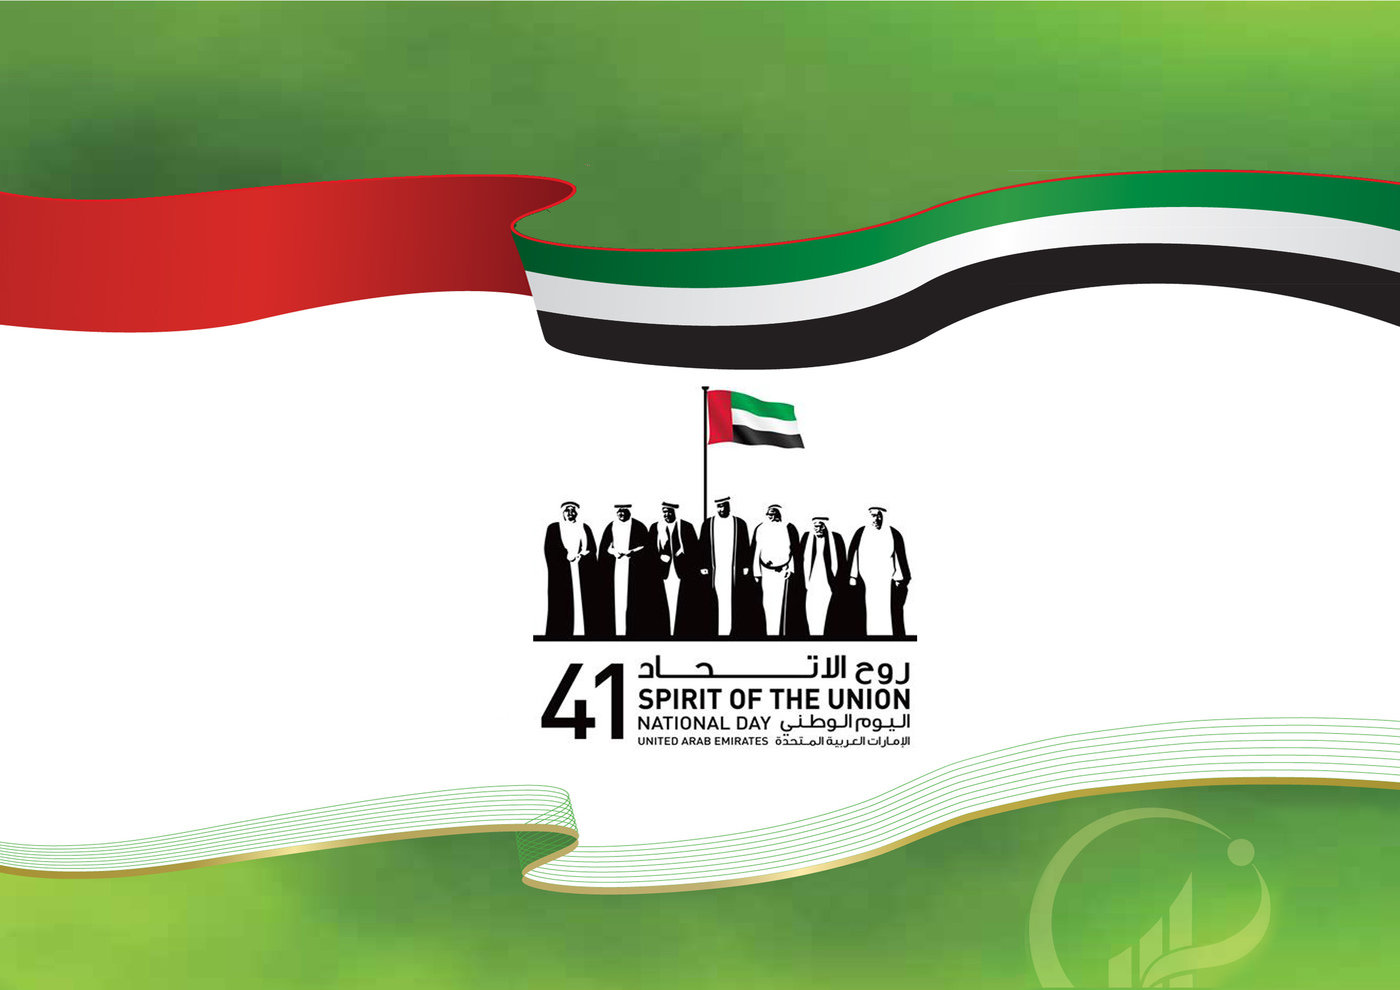 Invitation Card For Uae National Day By Sameira Al Tamimi At